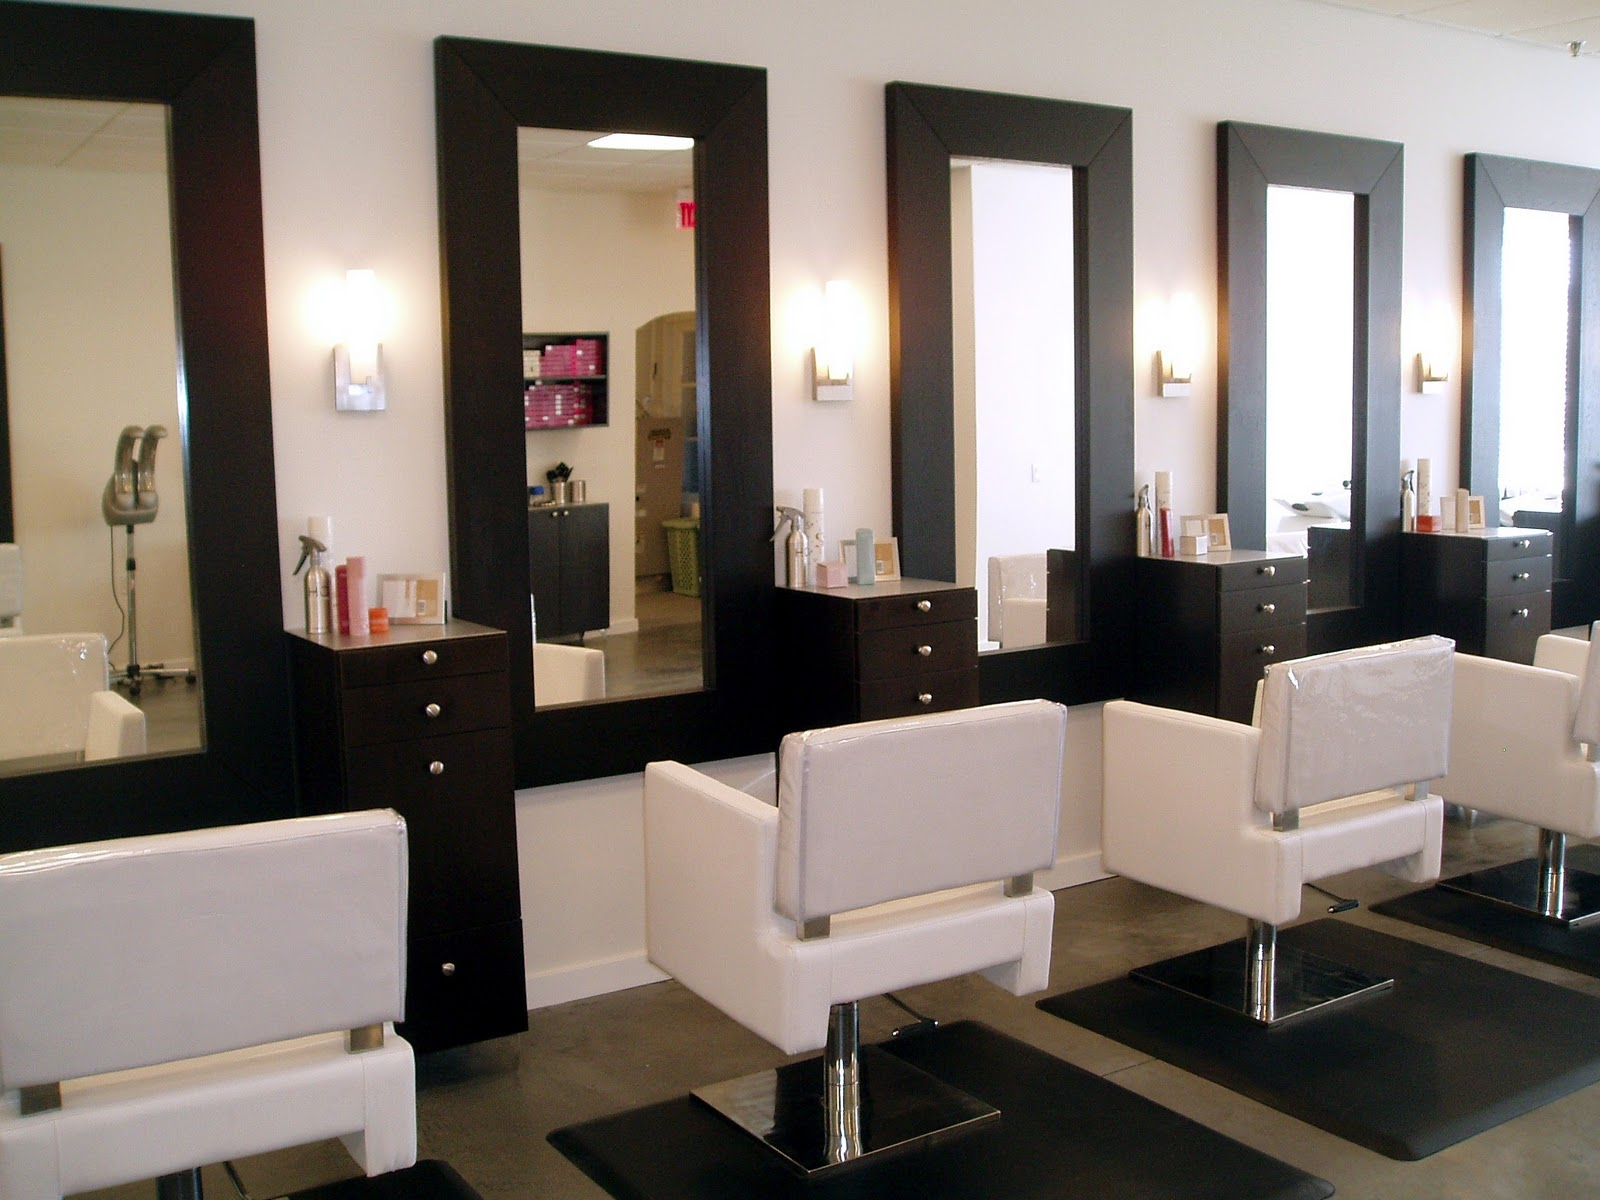 Hair salon stations - Salons fotos ...